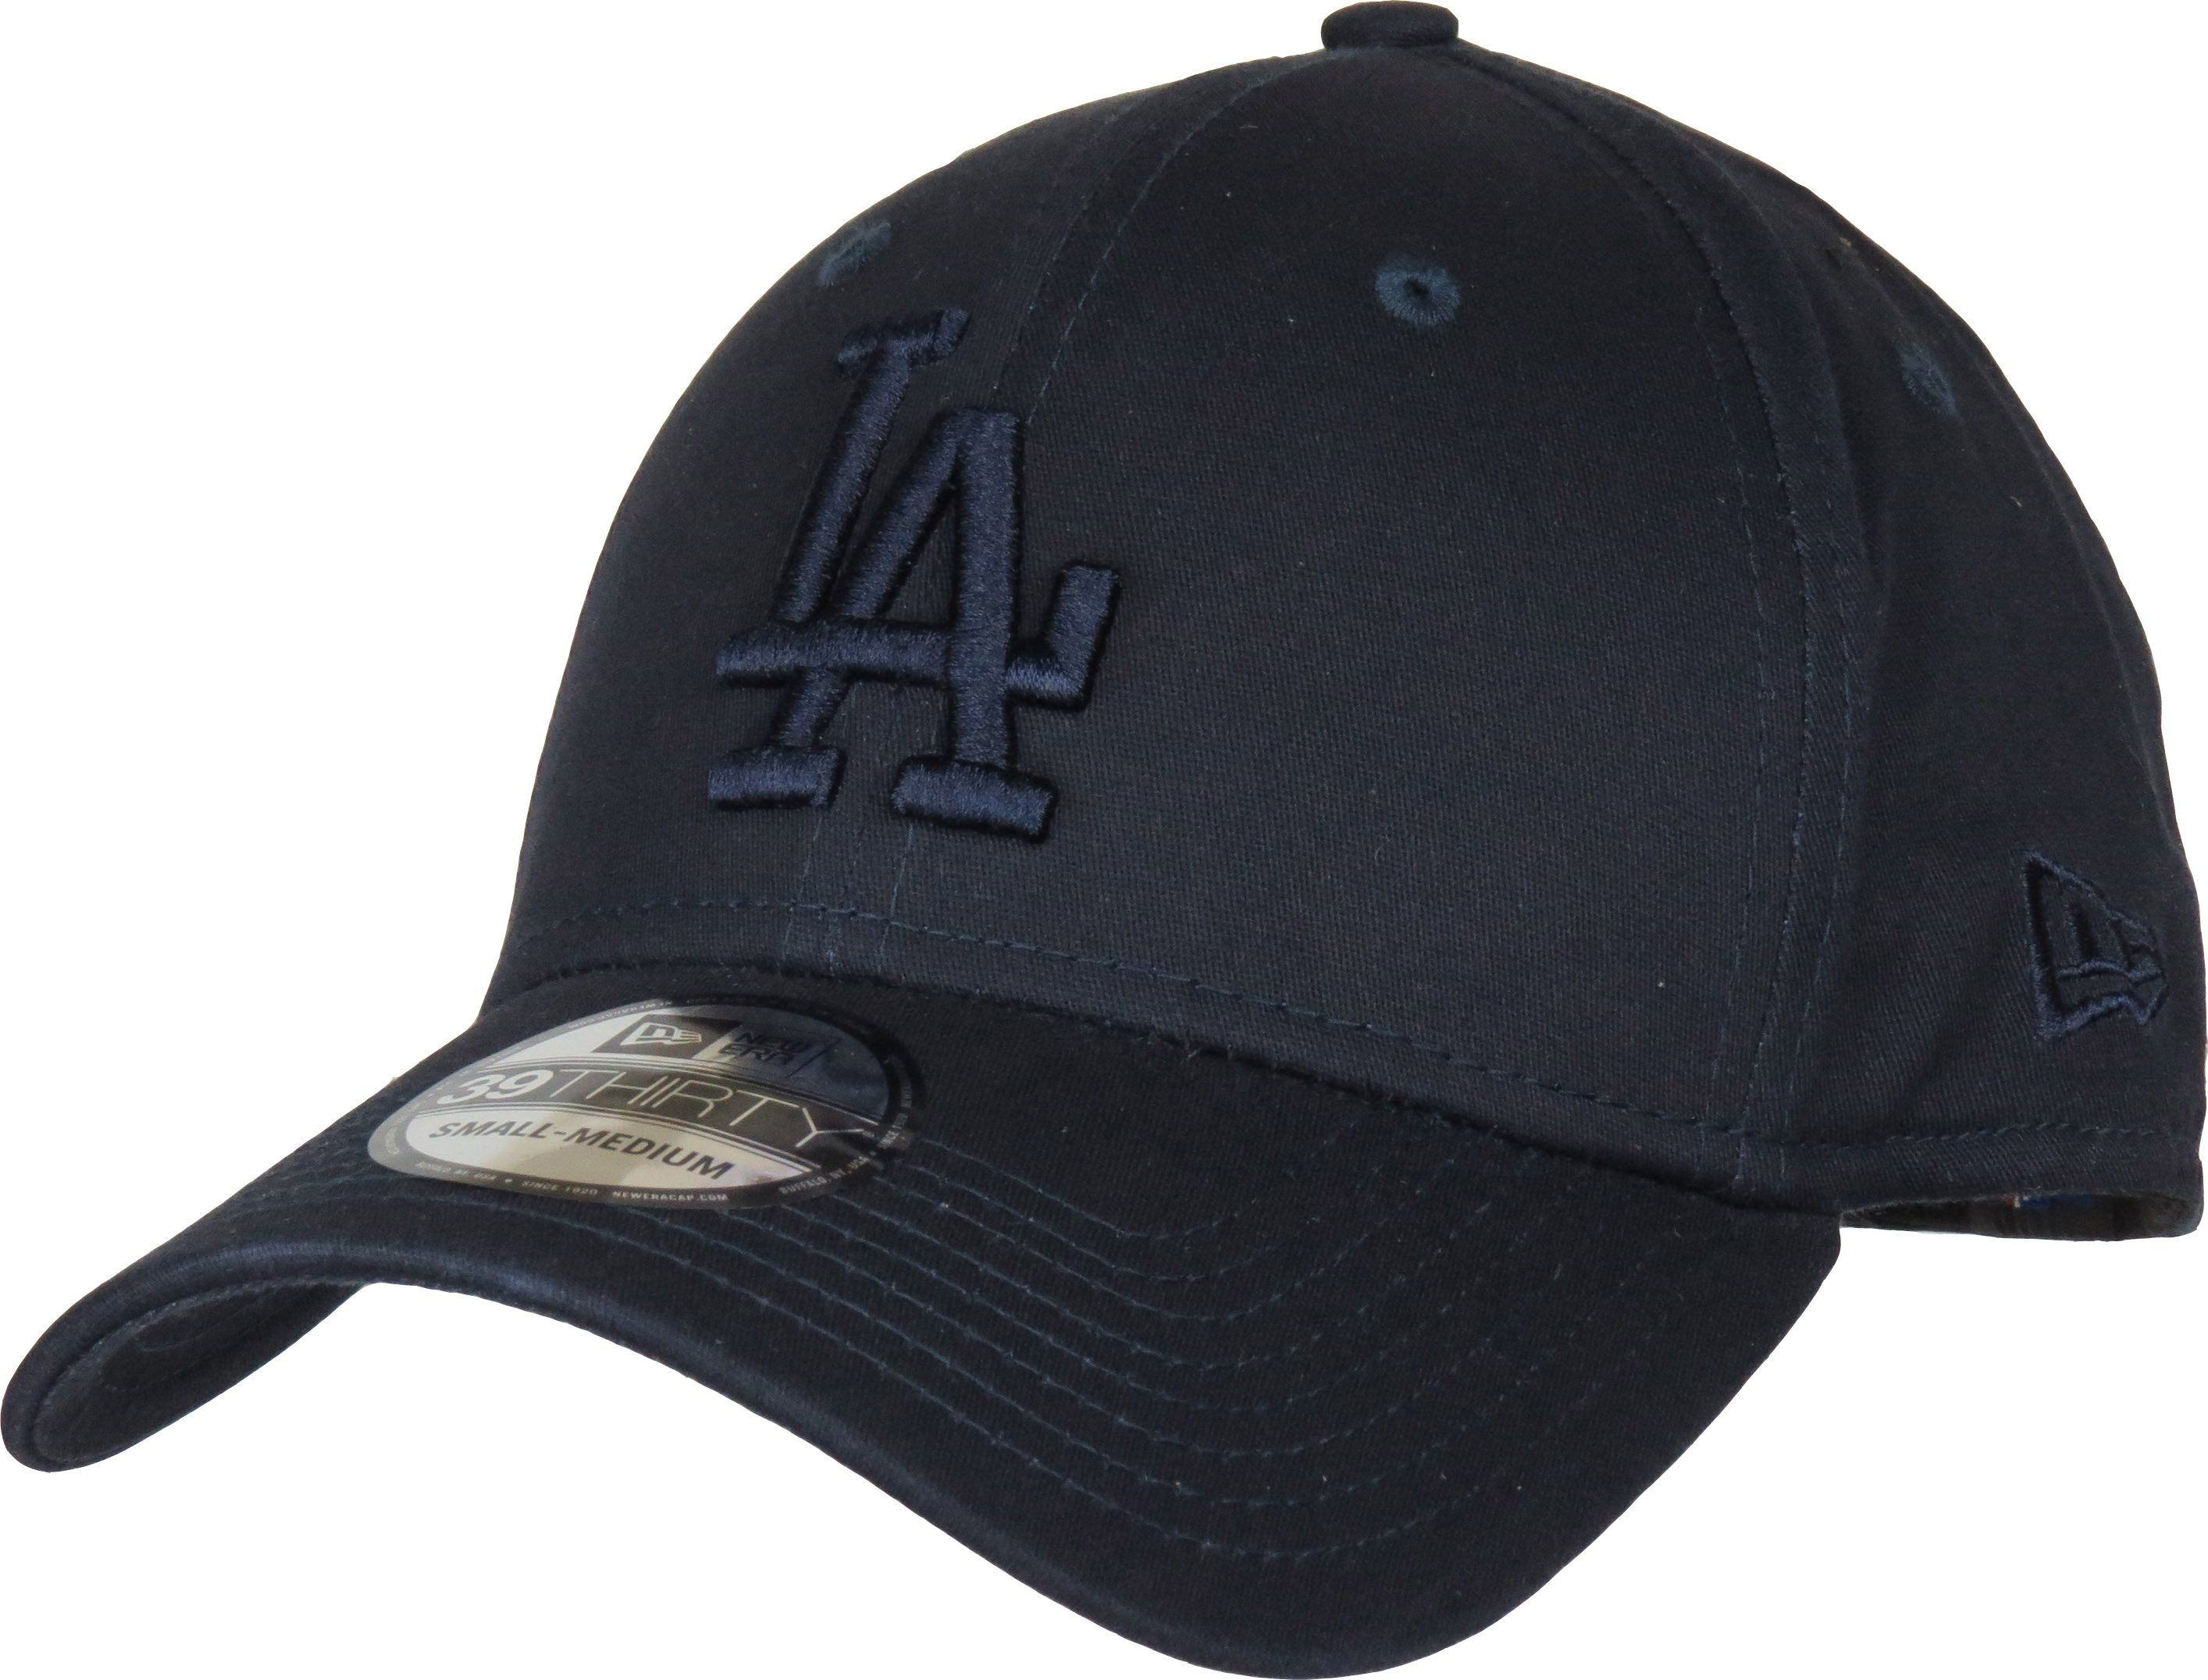 New Era 39Thirty League Essential Baseball Cap. Navy Blue, with the tonal LA Dodgers front logo, and New Era side logo. Stretch fit cap, available in 2 size var